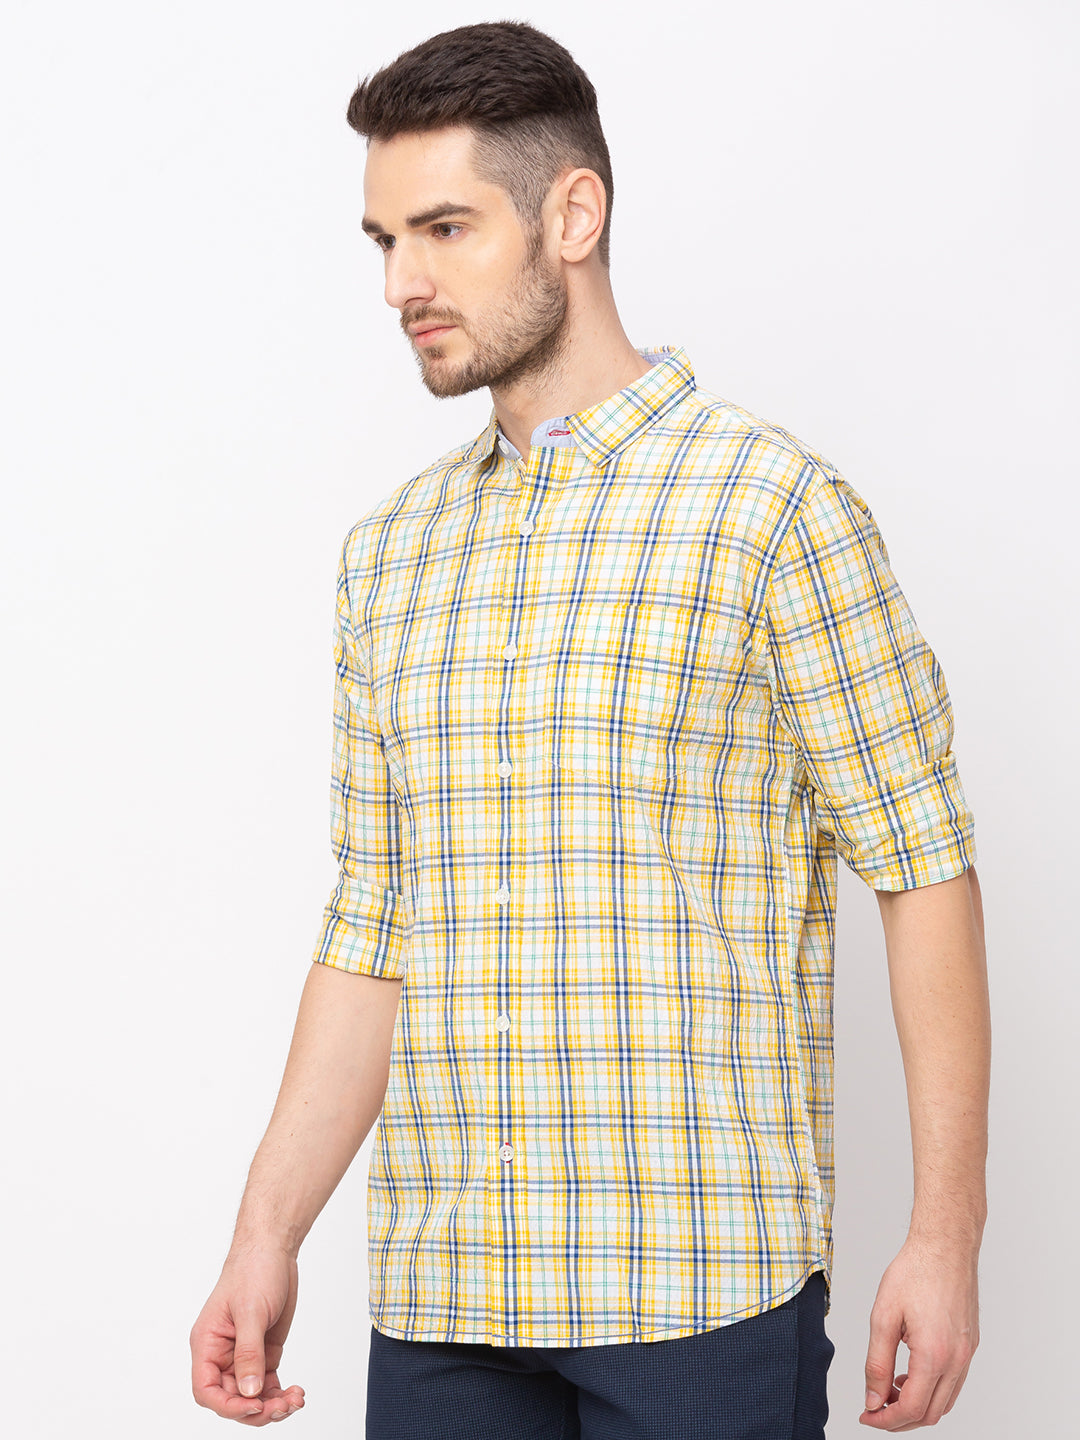 Globus Yellow Checked Shirt-2